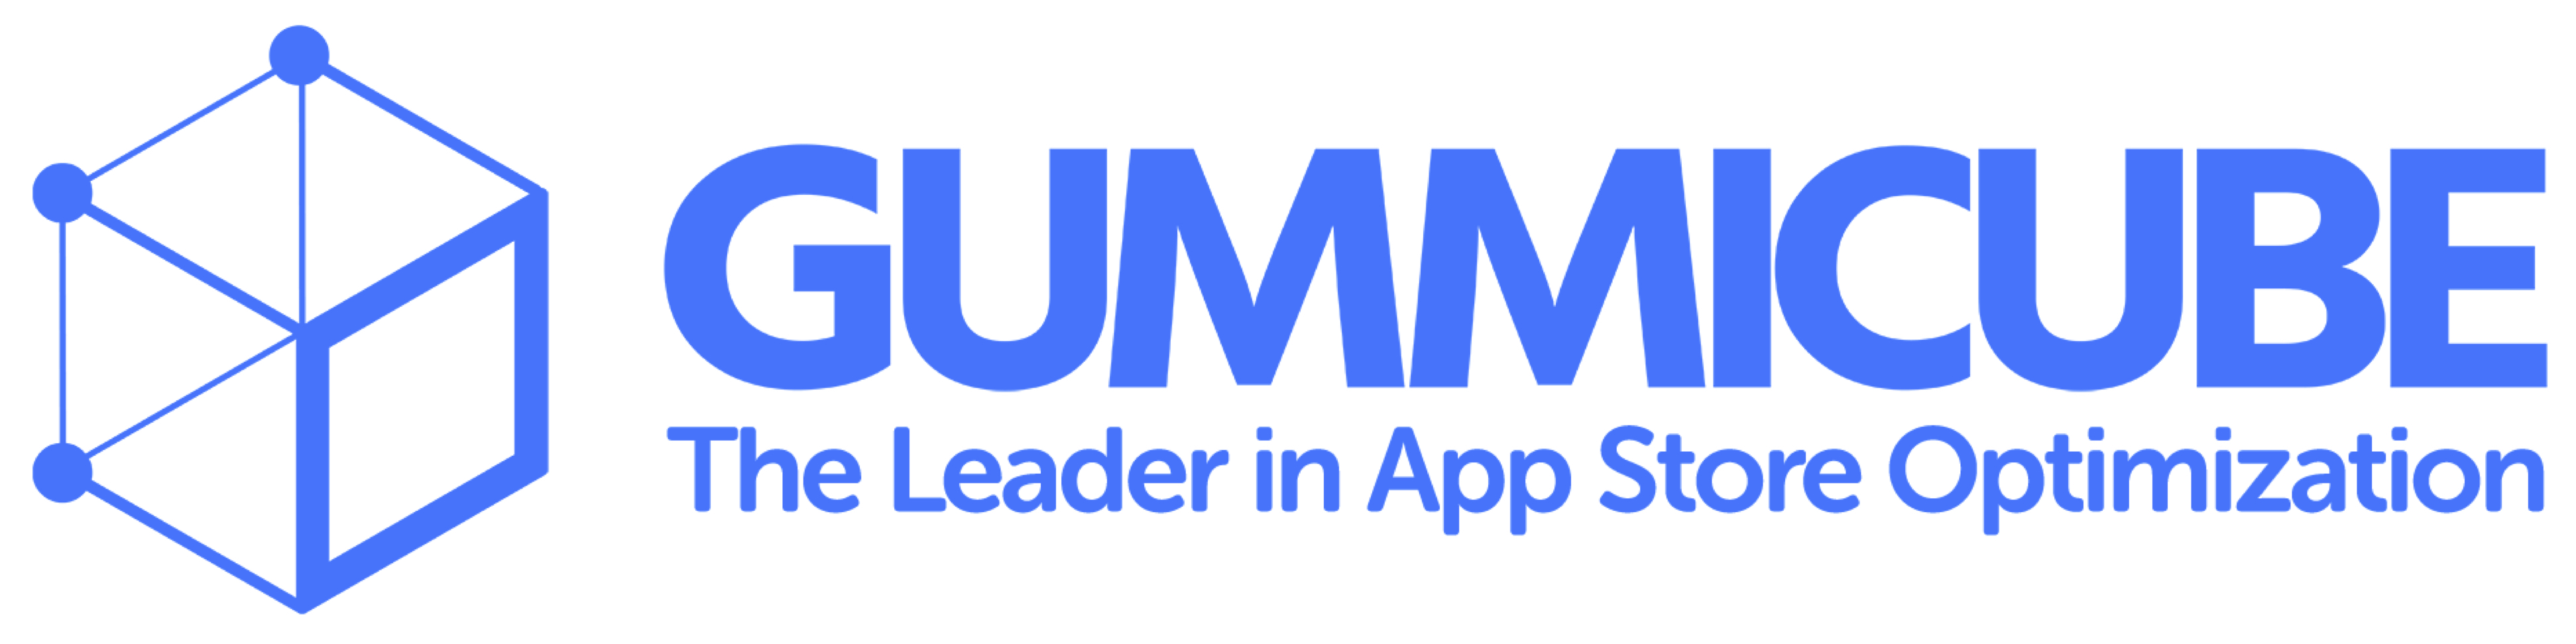 Gummicube The Leader in App Store Optimization